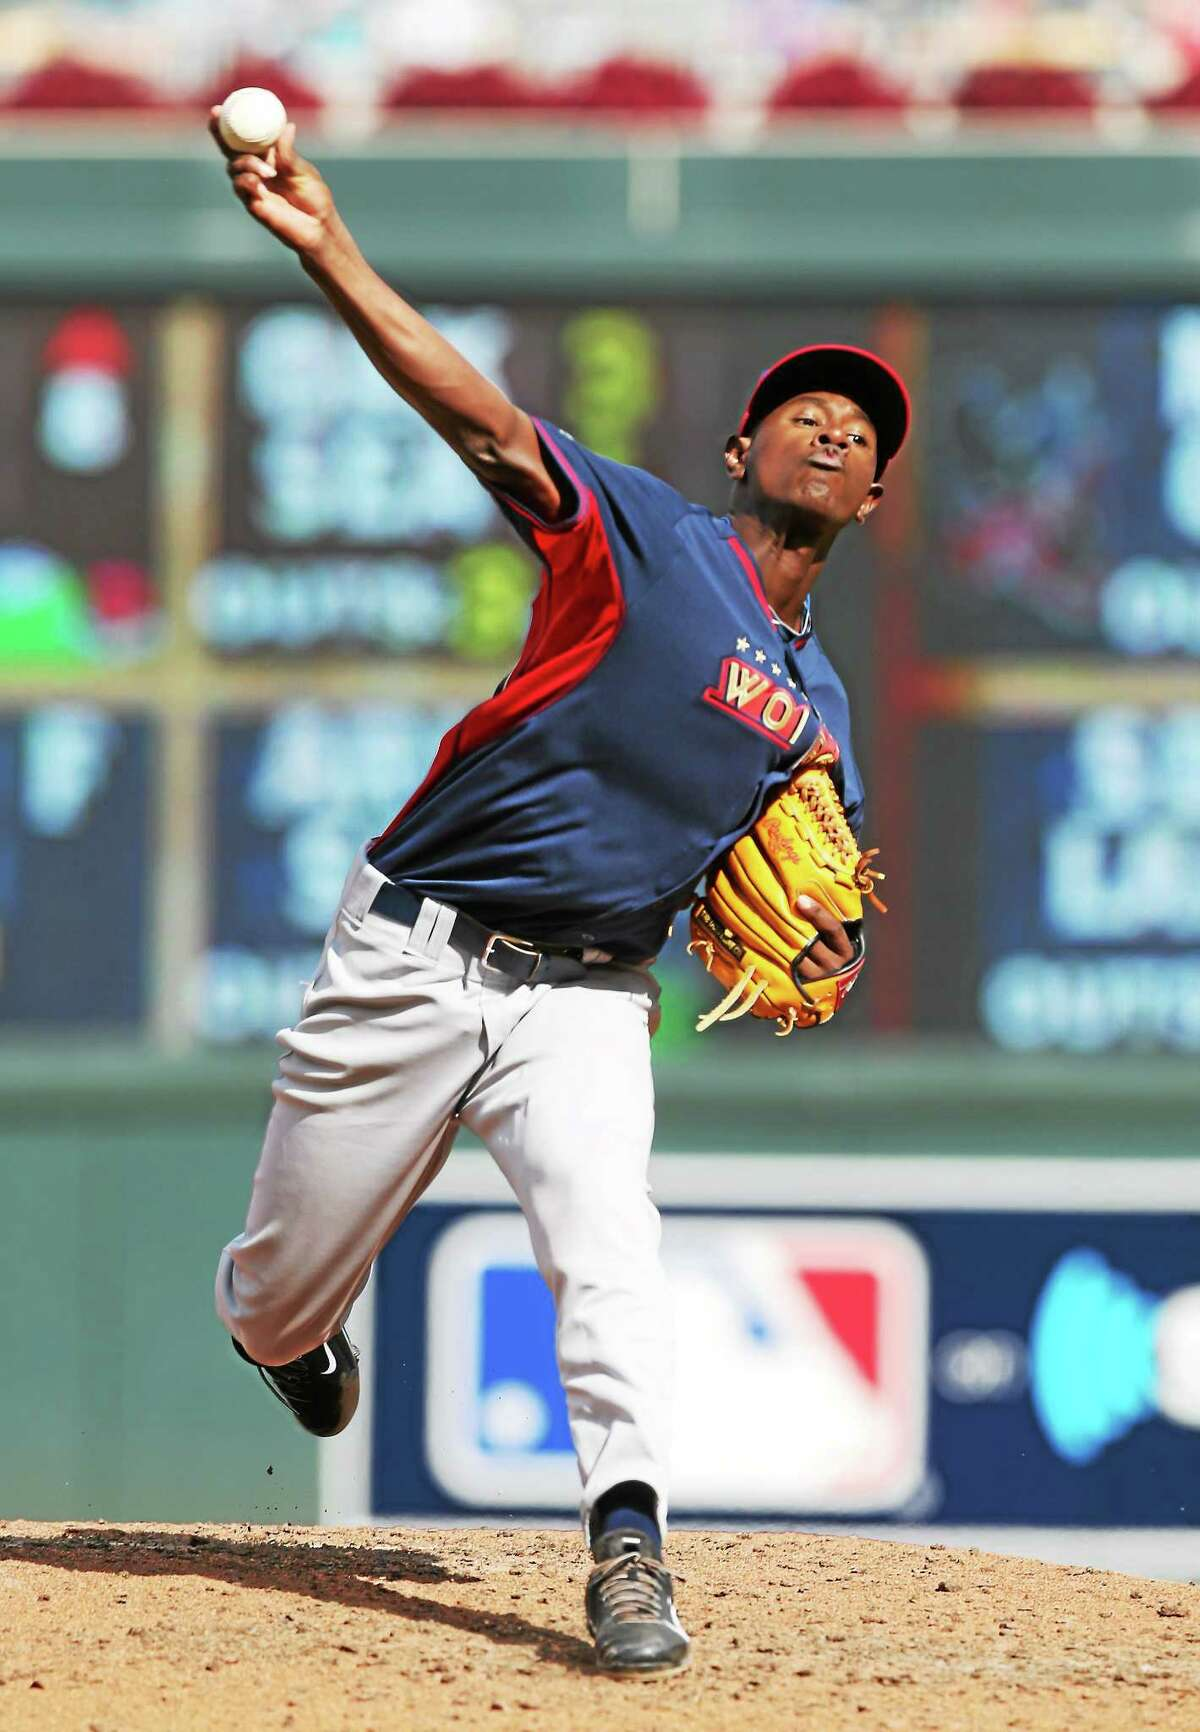 Yankees minor leaguer Luis Severino throws a pitch during the All-Star Futures Game last Sunday in Minneapolis.